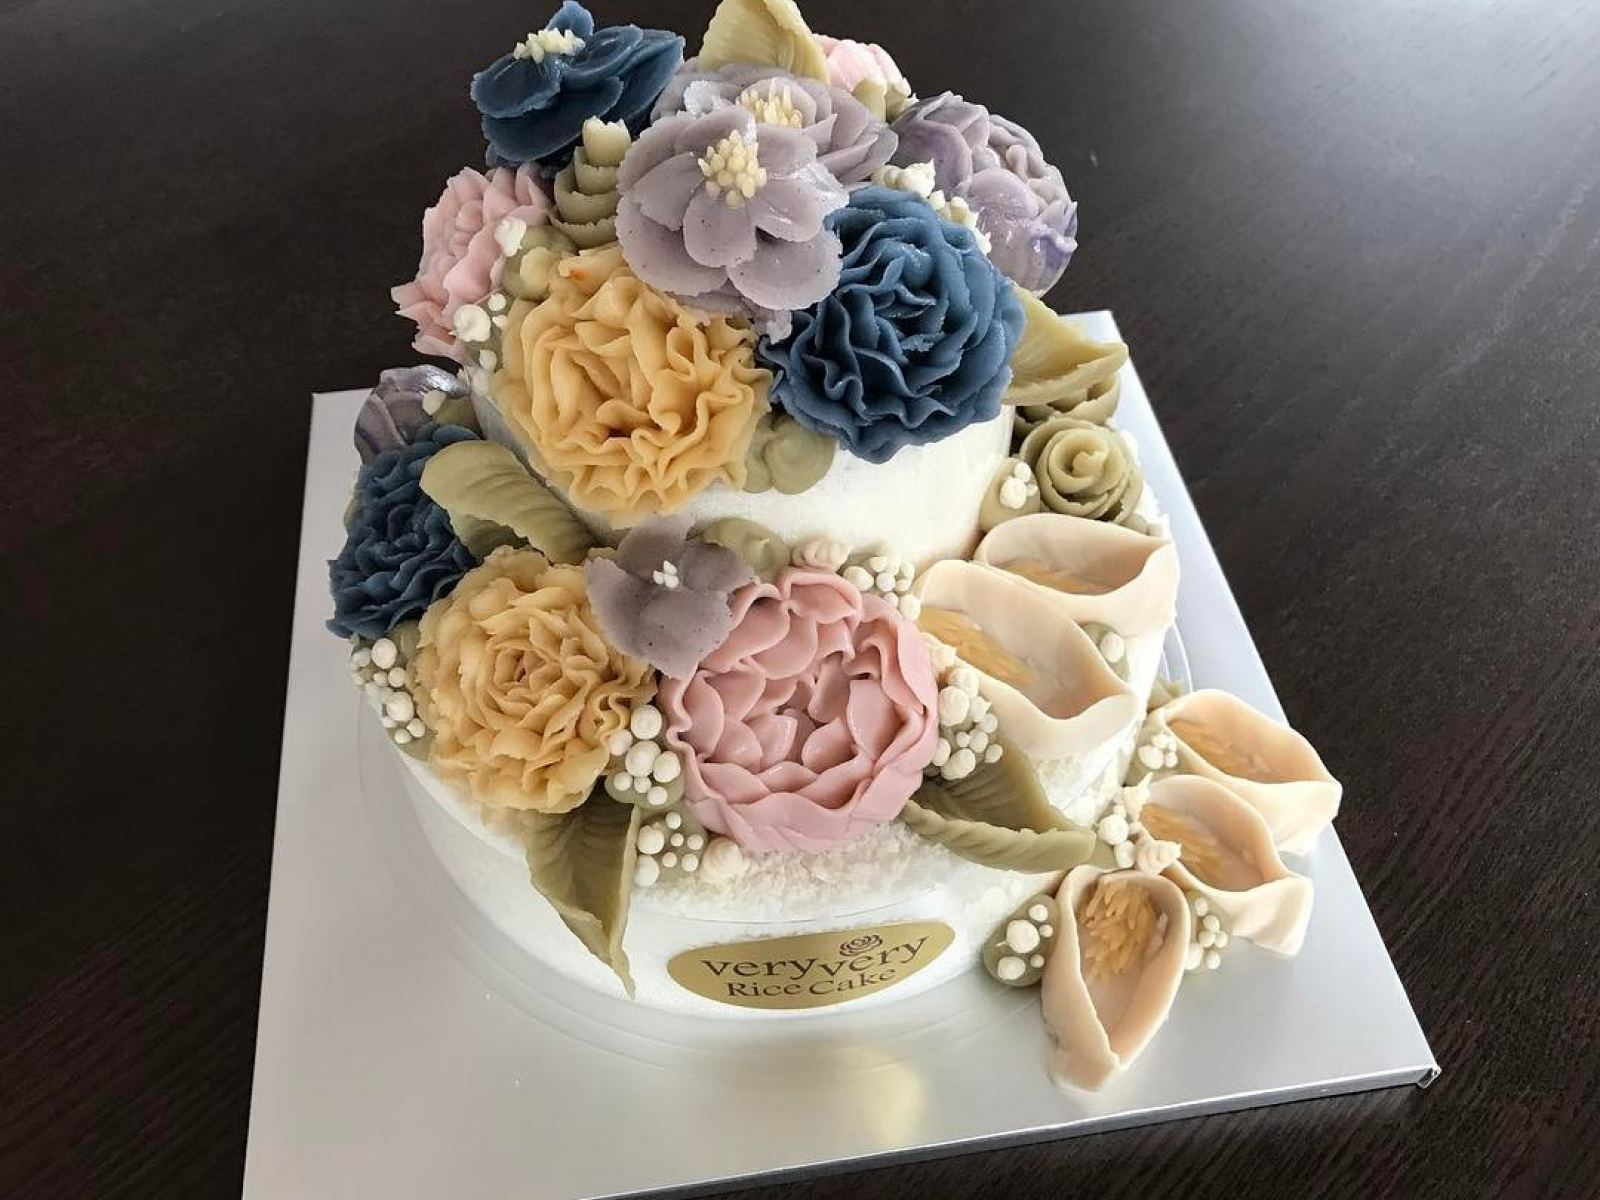 Birthday cake | Instagram by @veryveryricecakestudio